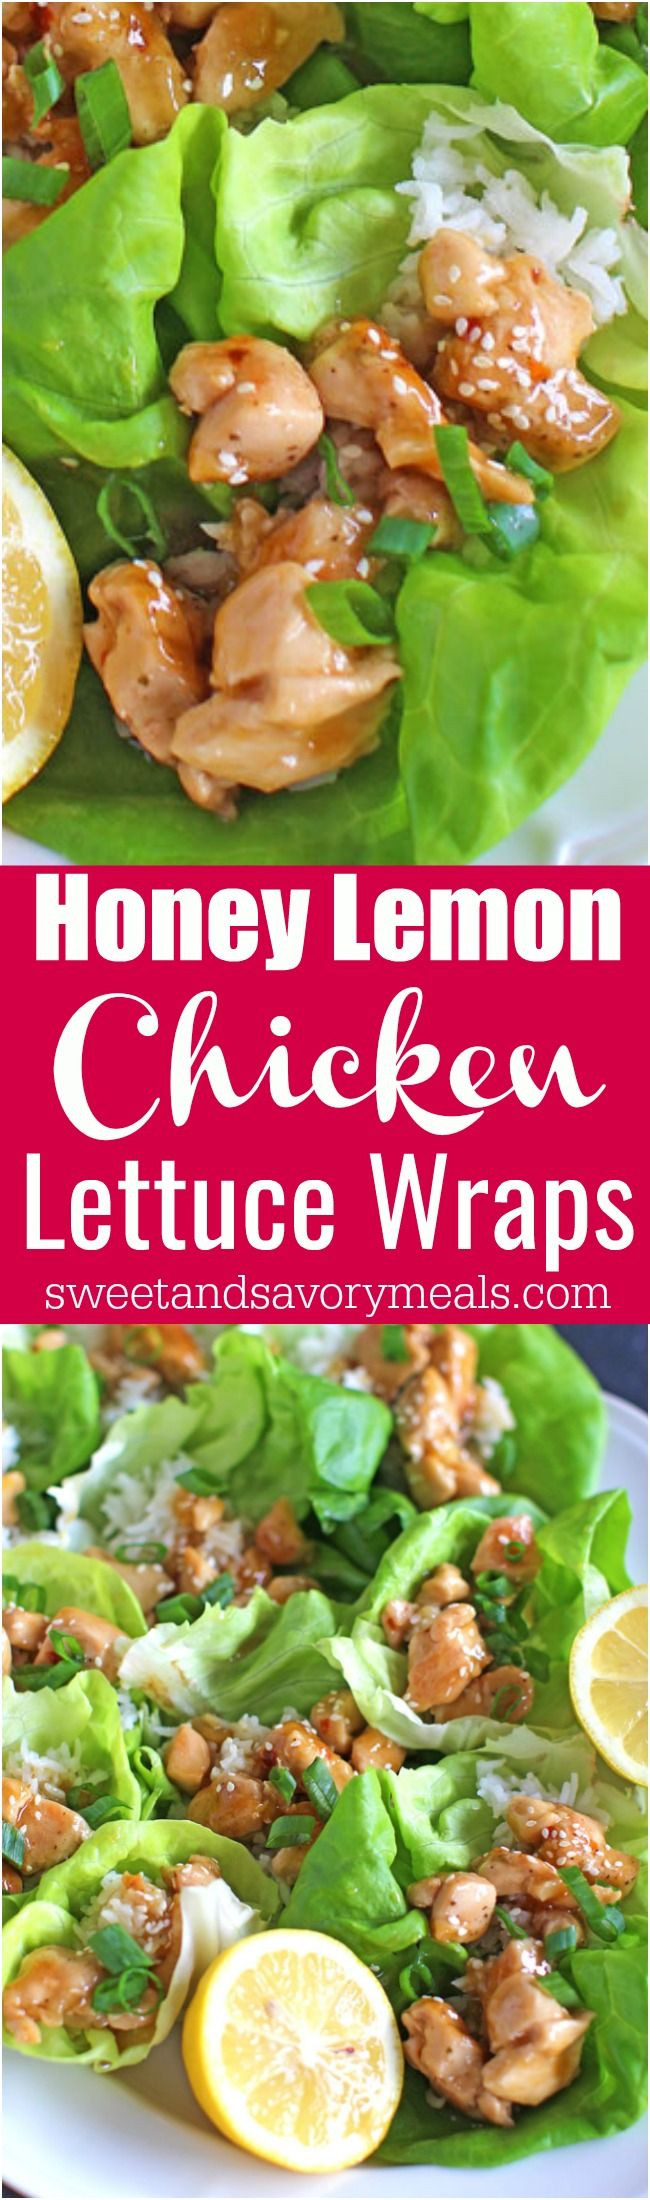 Honey Lemon Chicken Lettuce Wraps are such a great appetizer, snack or the perfect healthier dinner. Full of flavor and light, ready in 30 minutes. #chicken #asian #appetizer #light #healthyrecipes